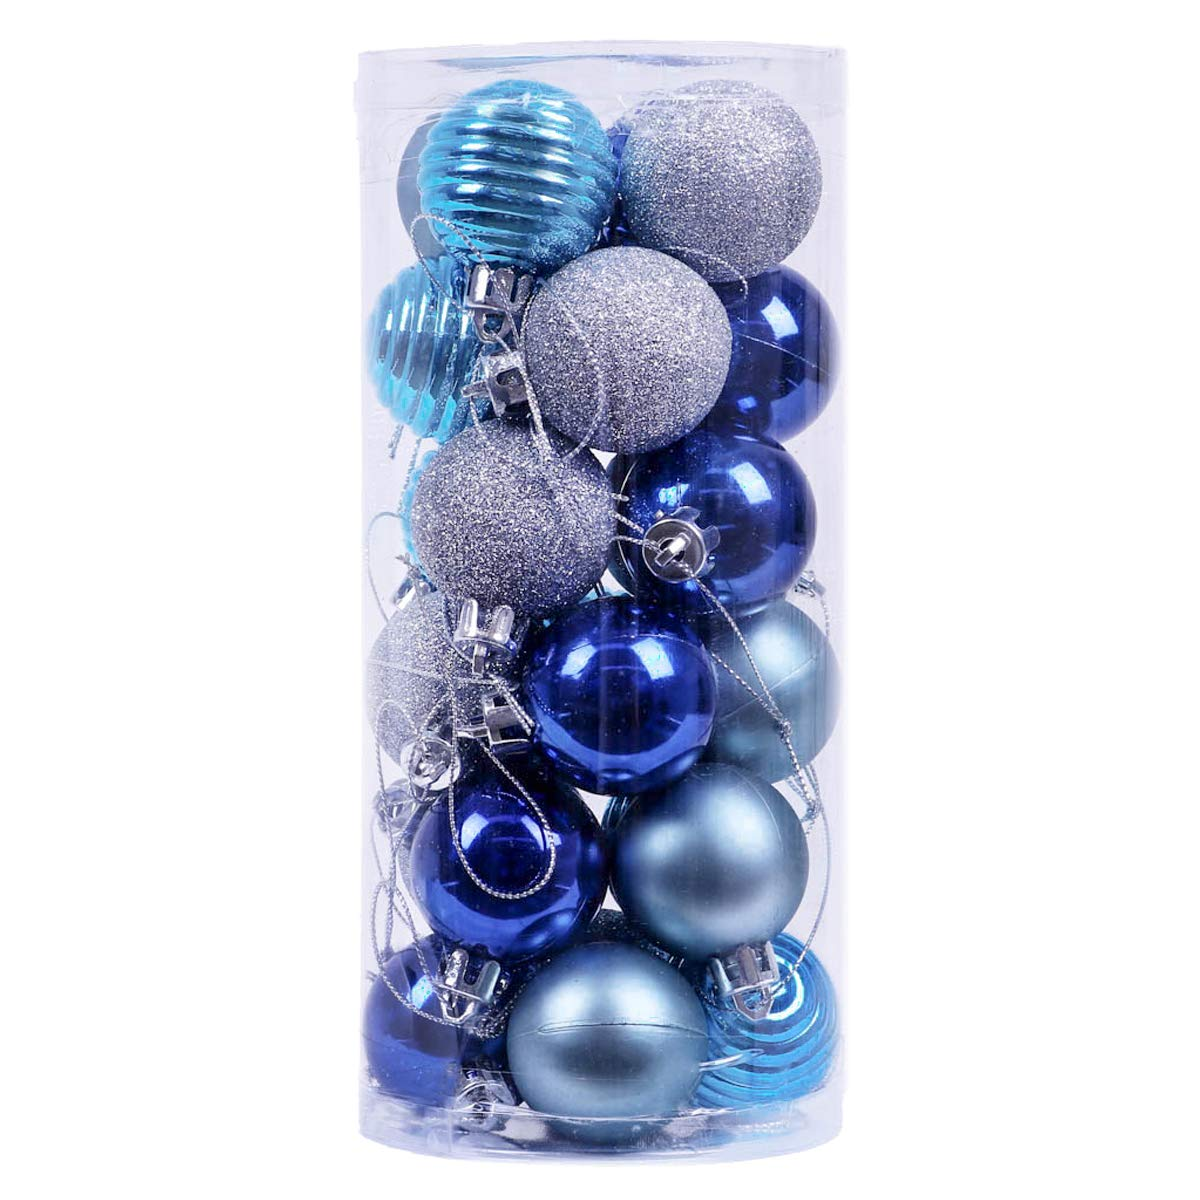 V&M VALERY MADELYN 24ct 40mm Winter Wishes Blue Silver Shatterproof Christmas Ball Ornaments Decoration with String Pre-Tied,Themed with Tree Skirt(Not Included) EG0101-0032